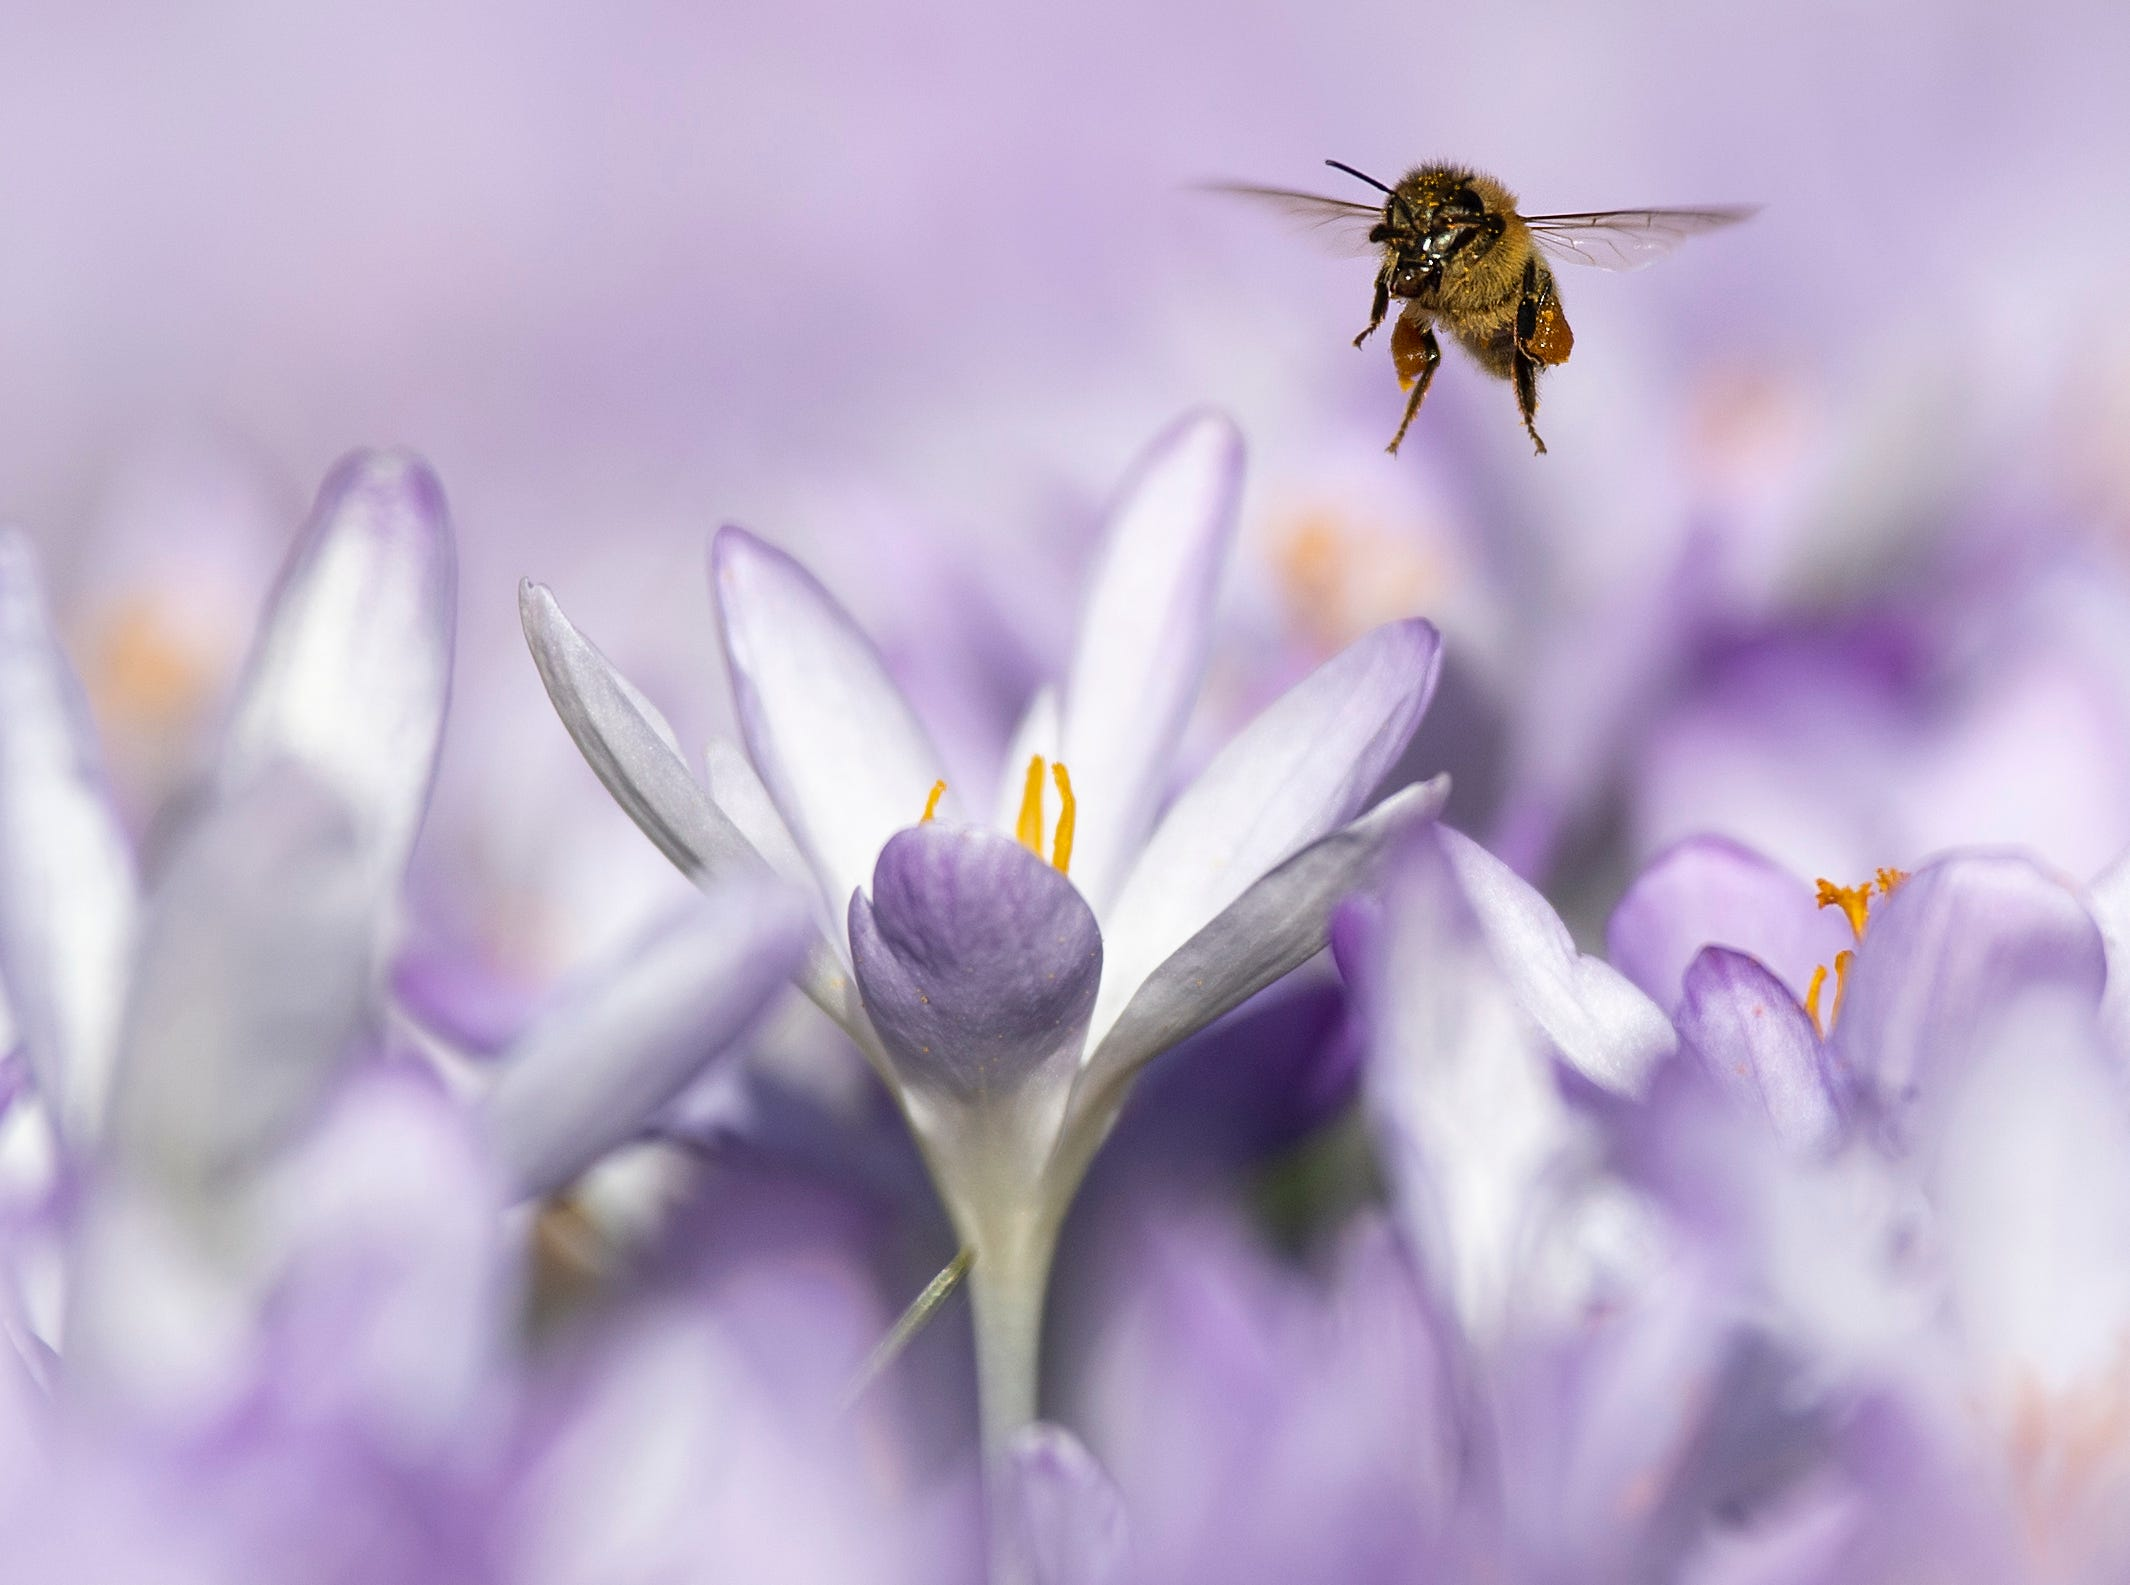 A bee forages around flowers on a warm winter's day, Wednesday, Feb. 27, 2019 in Bern, Switzerland.  The unseasonably warm weather seems to have bought the seasons forward by some weeks, revealing a spring view while still being in winter.